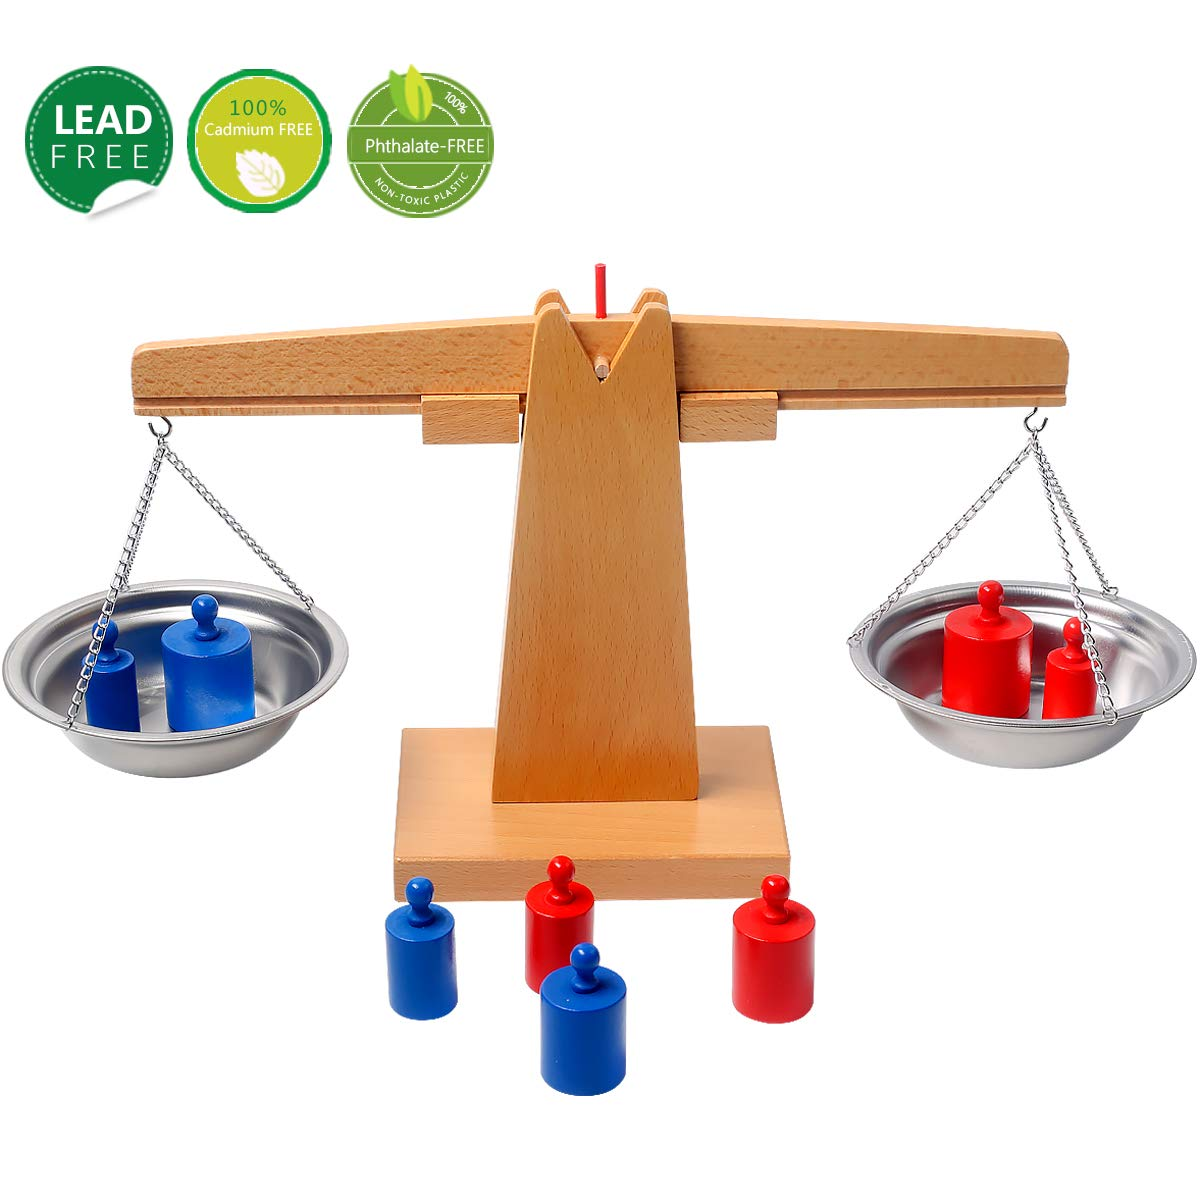 YiGooood Montessori Toys for Toddlers Wooden Balance Beam Weighing Scale Sensorial Early Childhood Training Educational Learning Math Toys